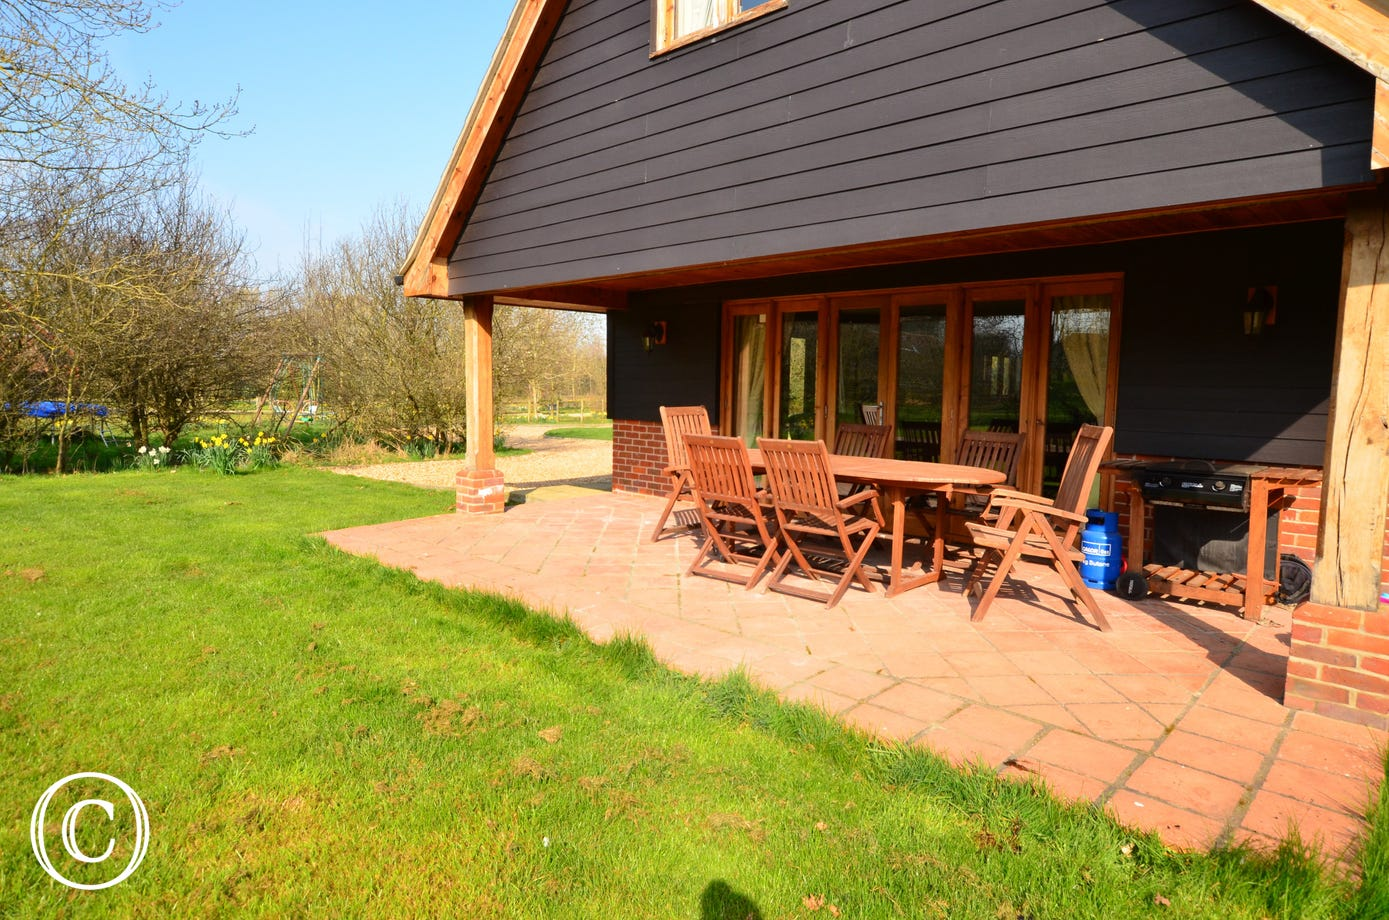 French doors from the sitting room open out onto the the large patio which is partially shaded by the overhang from the first floor. There is a large wooden table and chairs and a gas barbecue, this is an ideal space for relaxing family meals